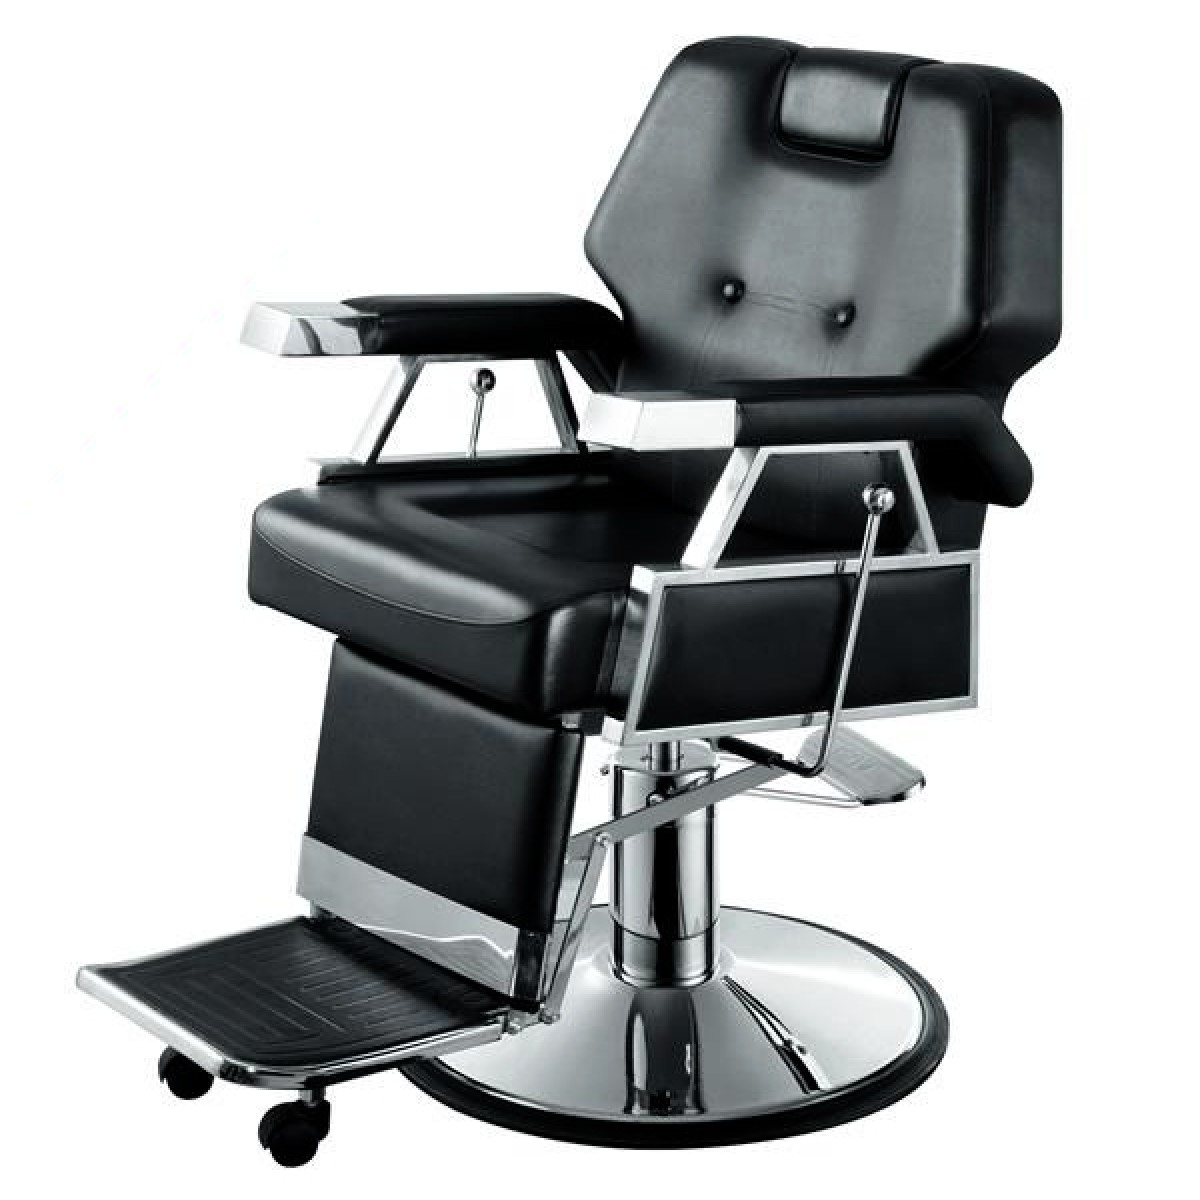 """HADRIAN"" Equipment for Salon Barber Shops, Furniture for Salon Barber Shops"